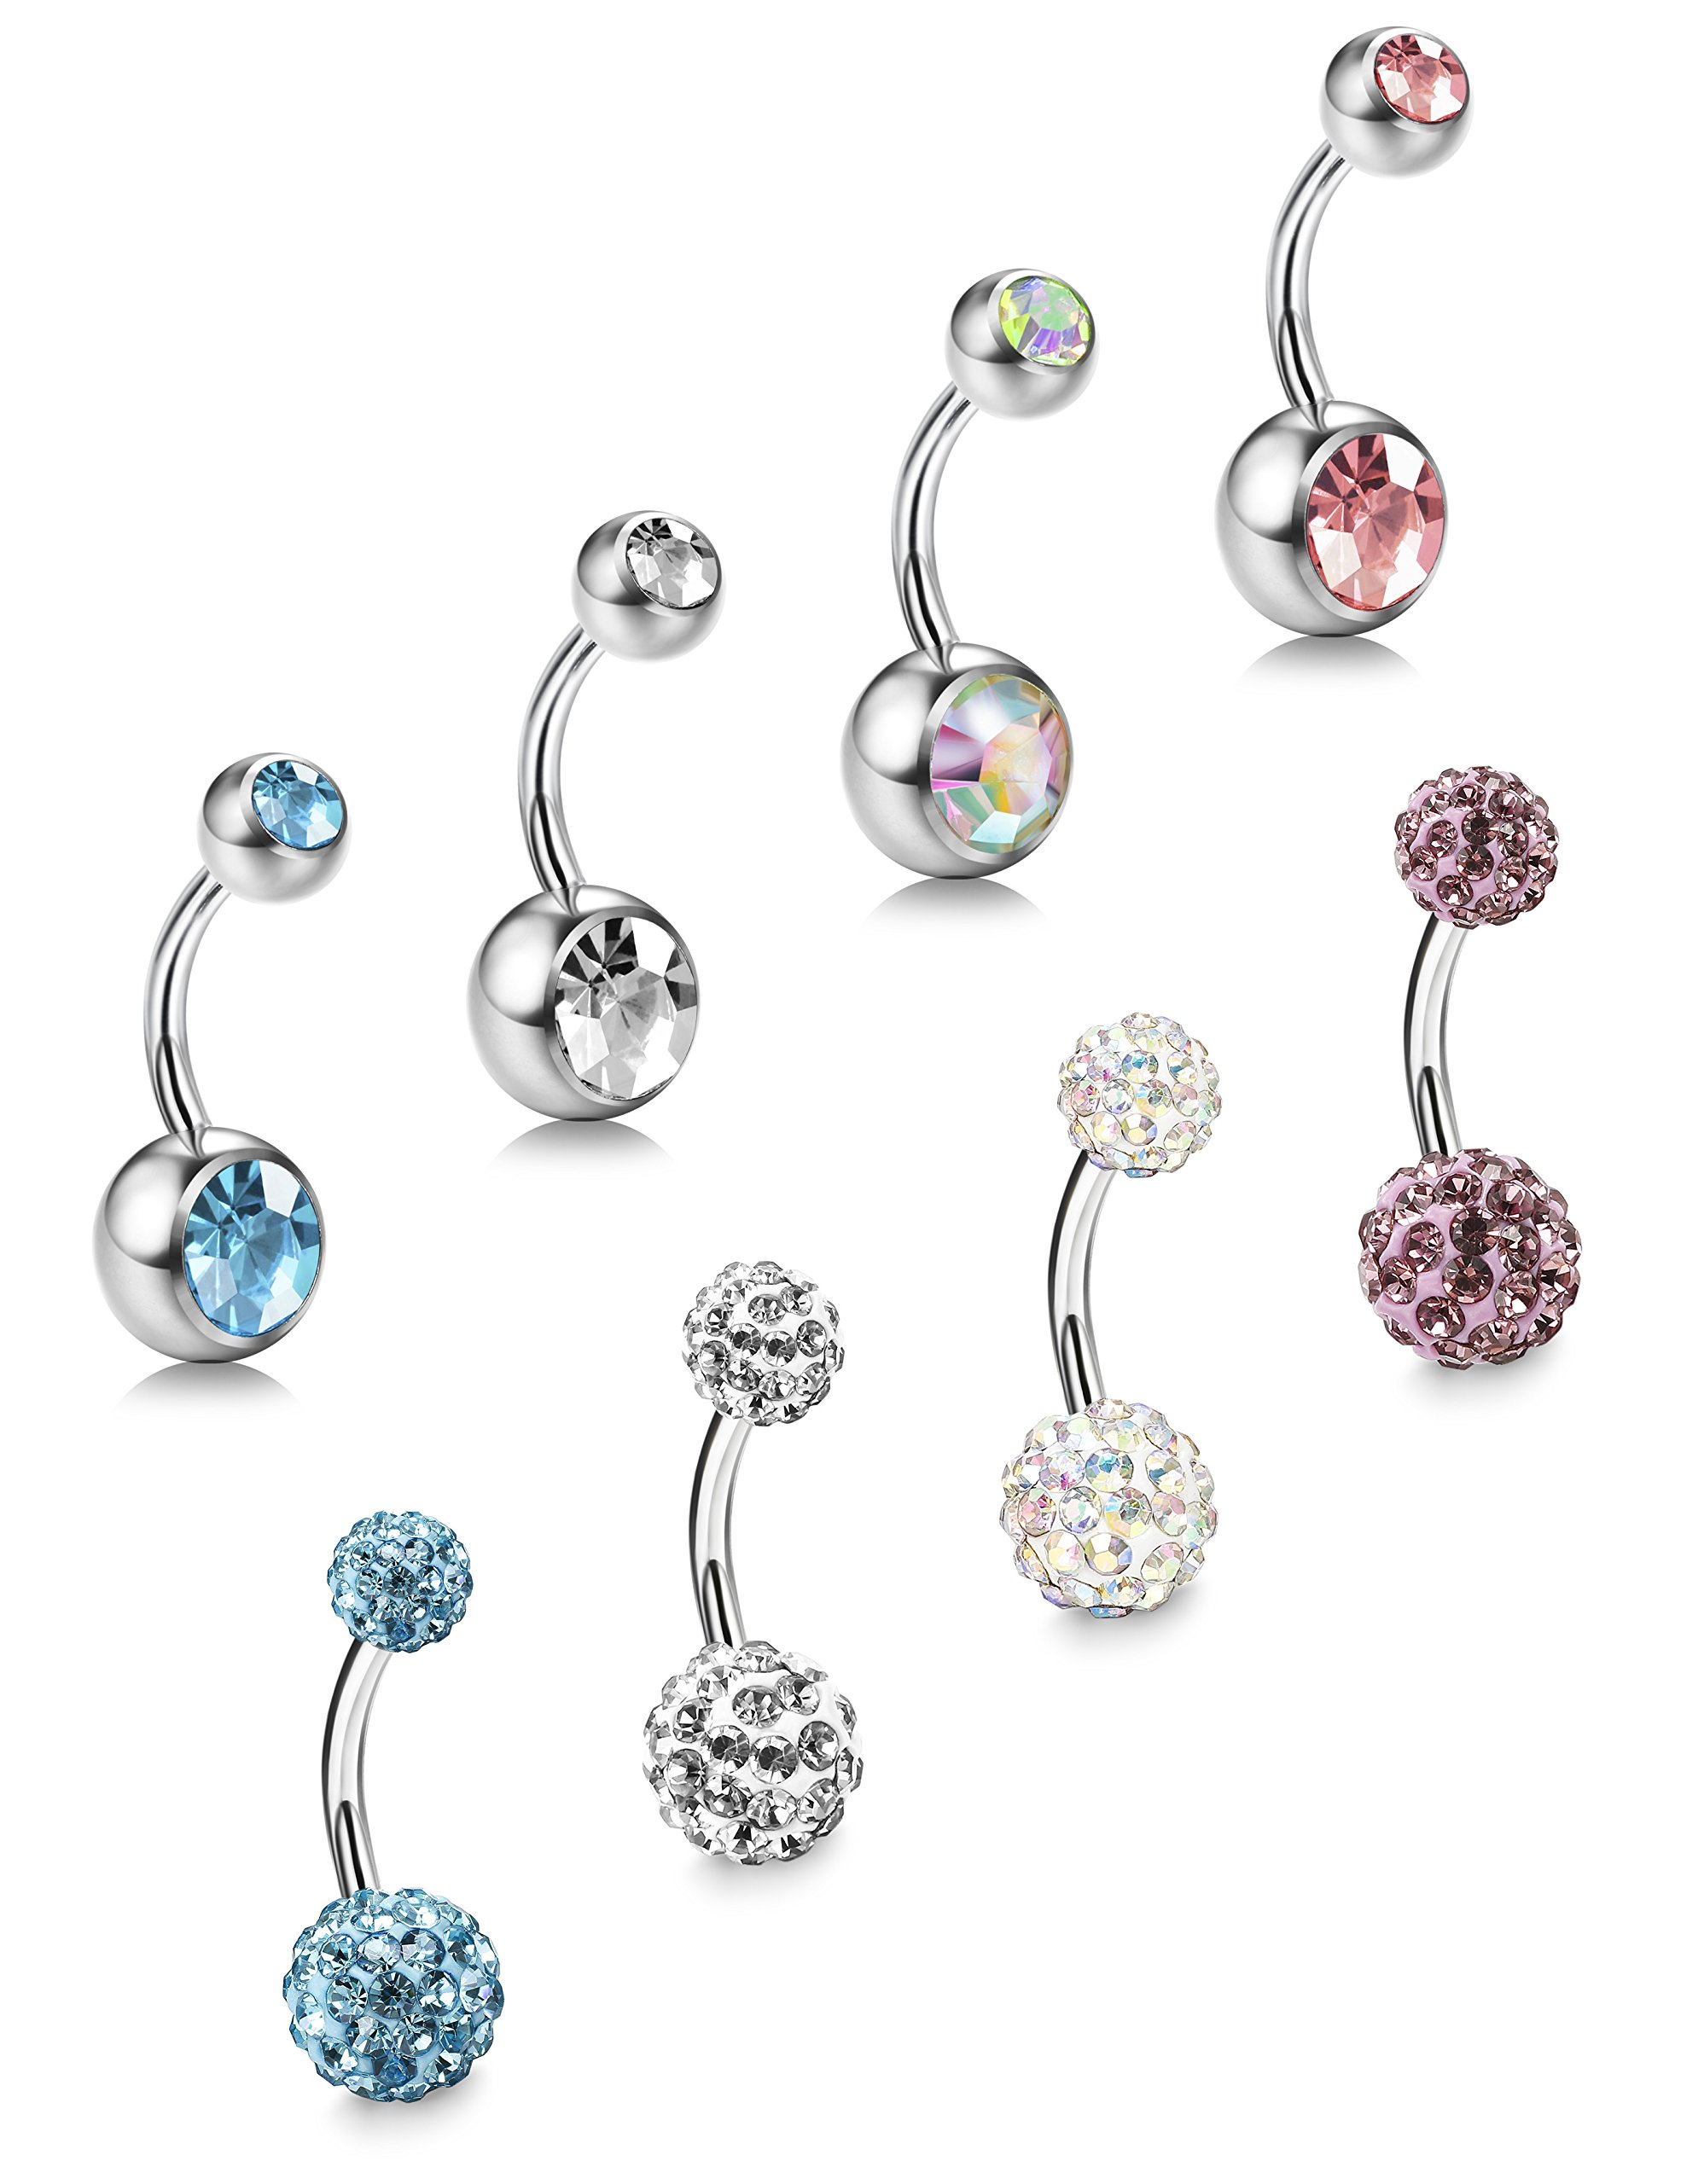 ORAZIO 8Pcs 14G Stainless Steel Belly Button Rings Screw Navel Bars Body Piercing